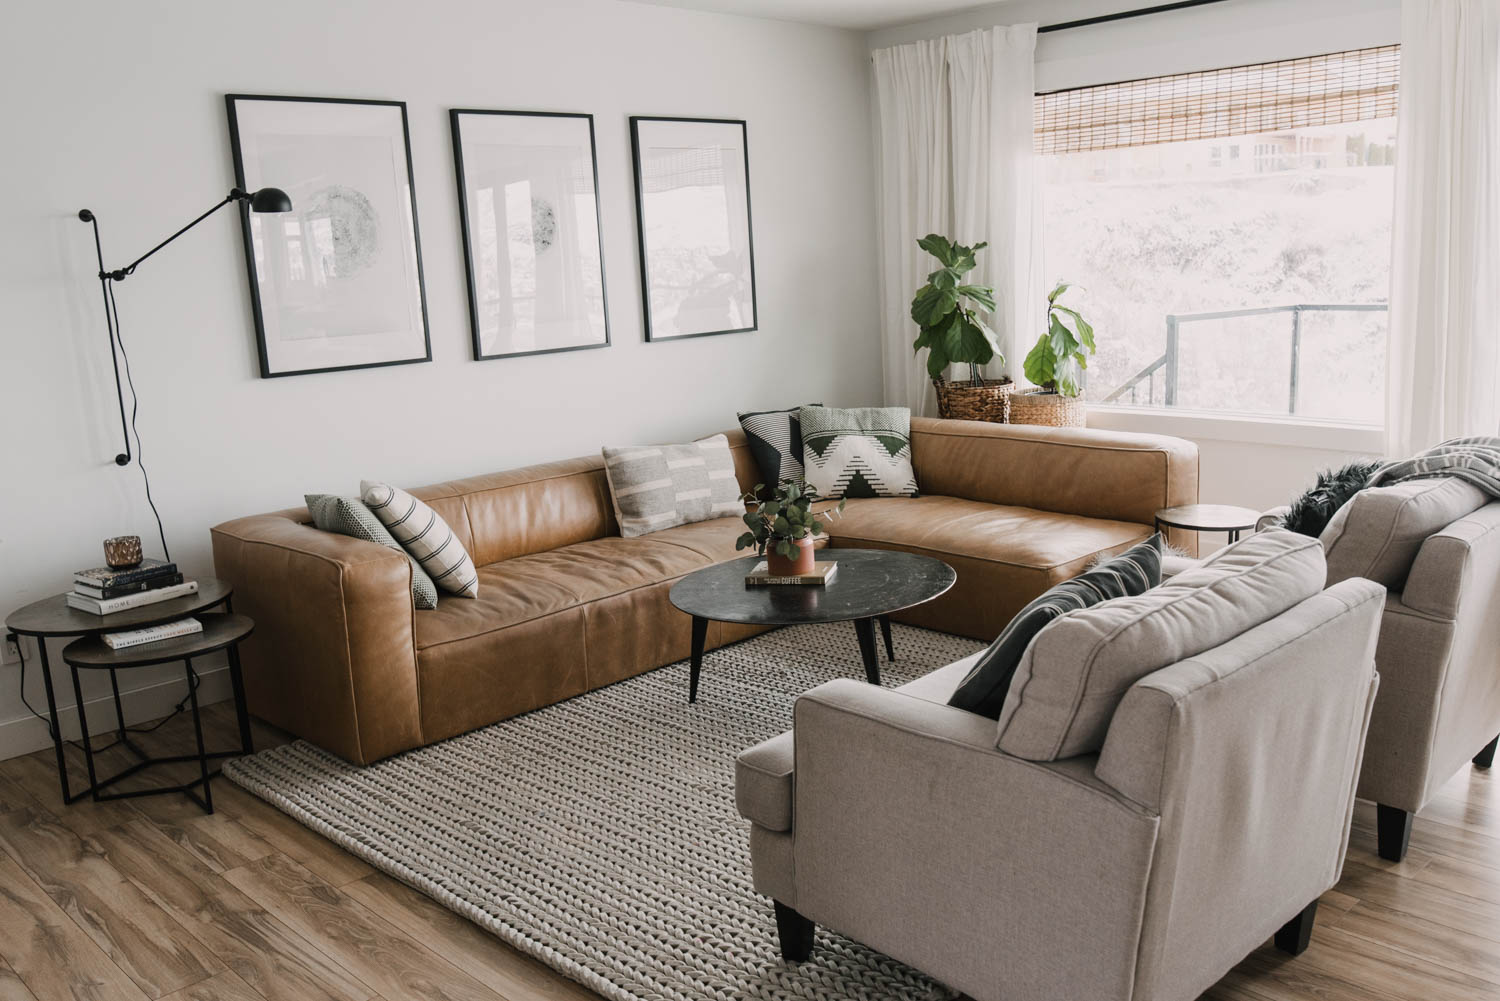 Modern ranch style living room with camel leather couch